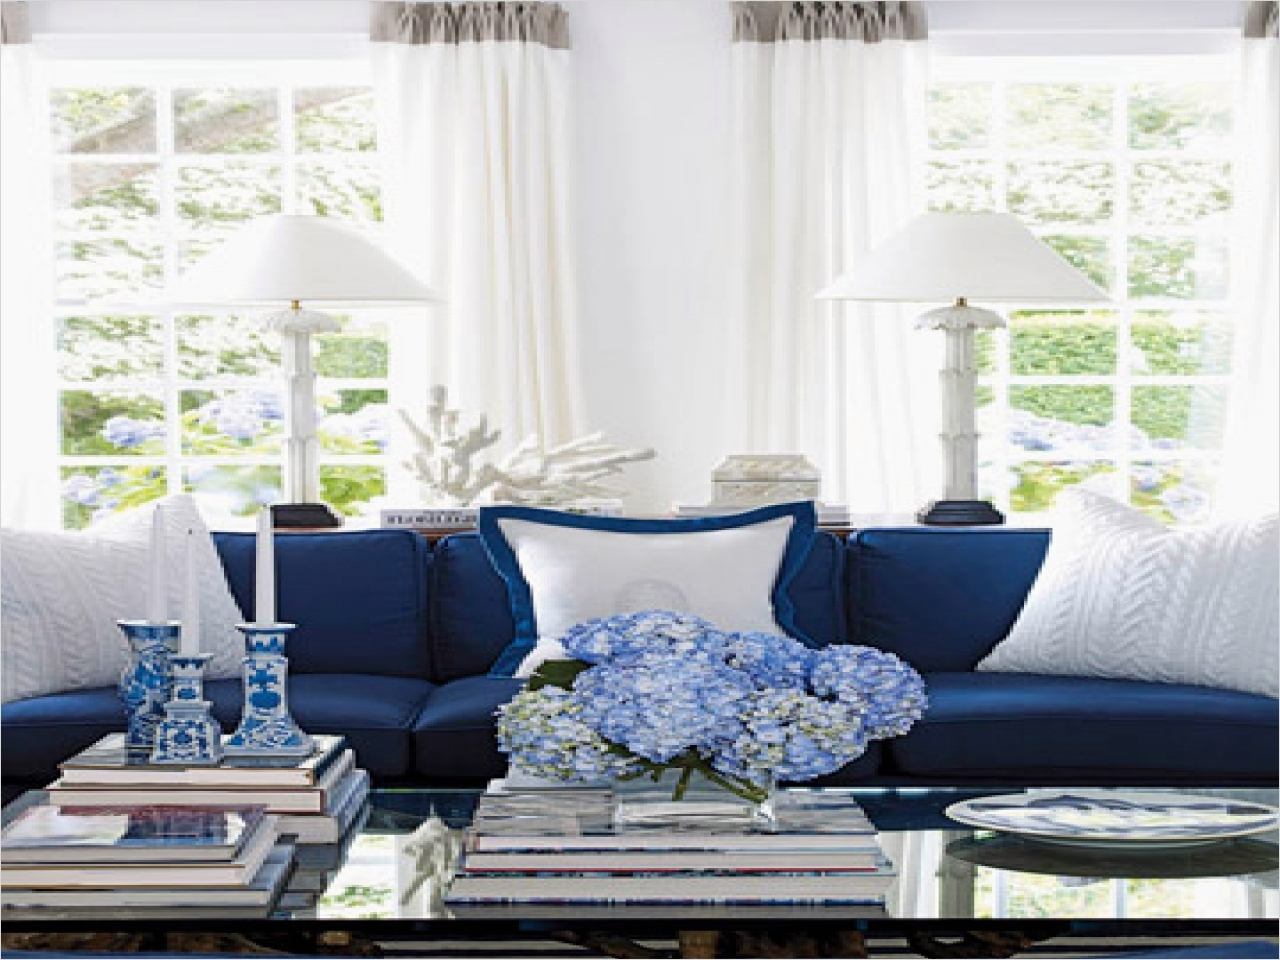 41 Amazing Navy Blue and White Living Room 57 Navy Blue and White Living Room Smileydot 3